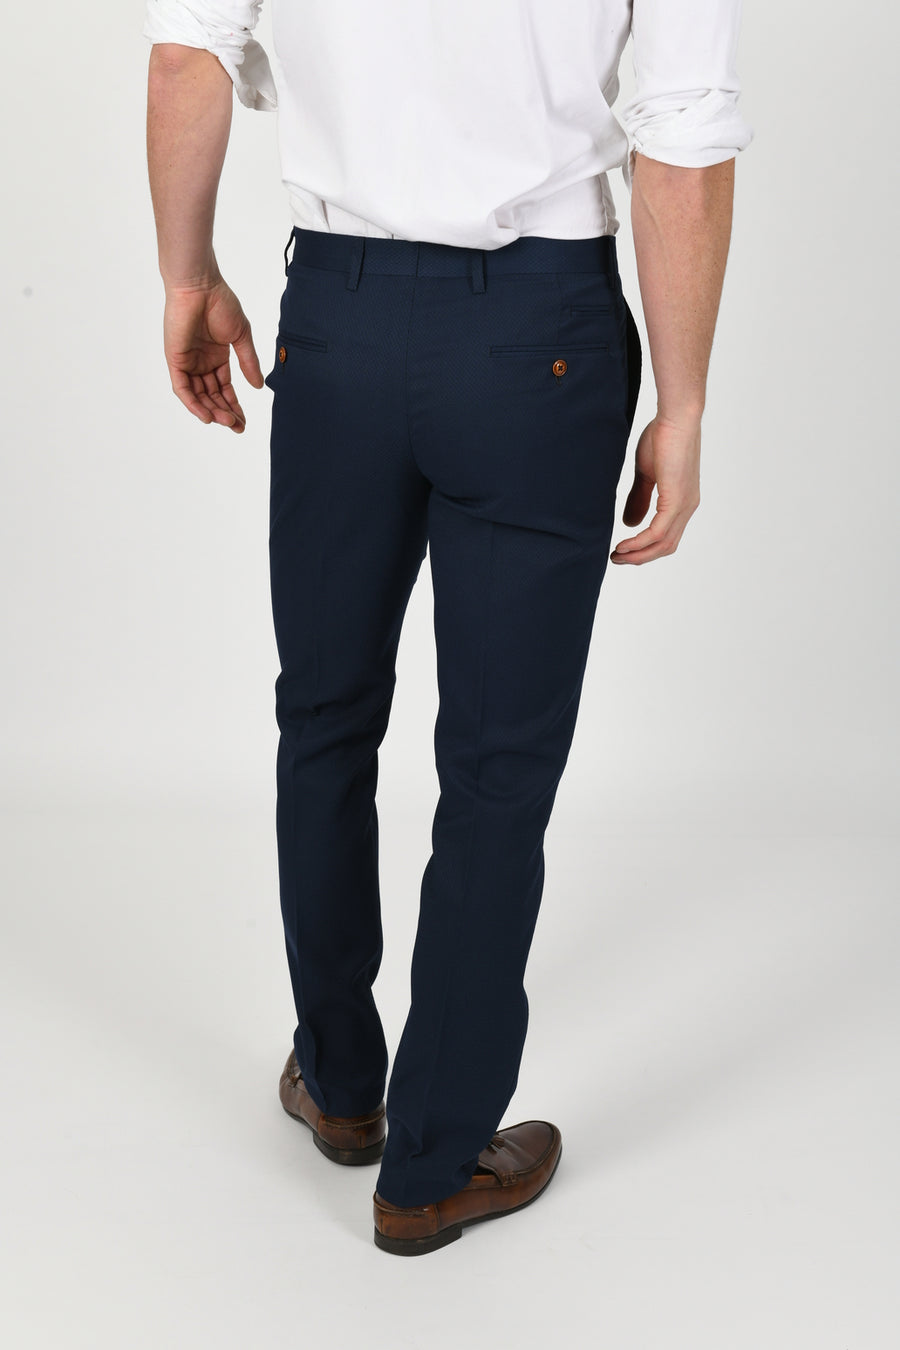 Max Royal Blue Wedding Trousers - Wedding Suit Direct